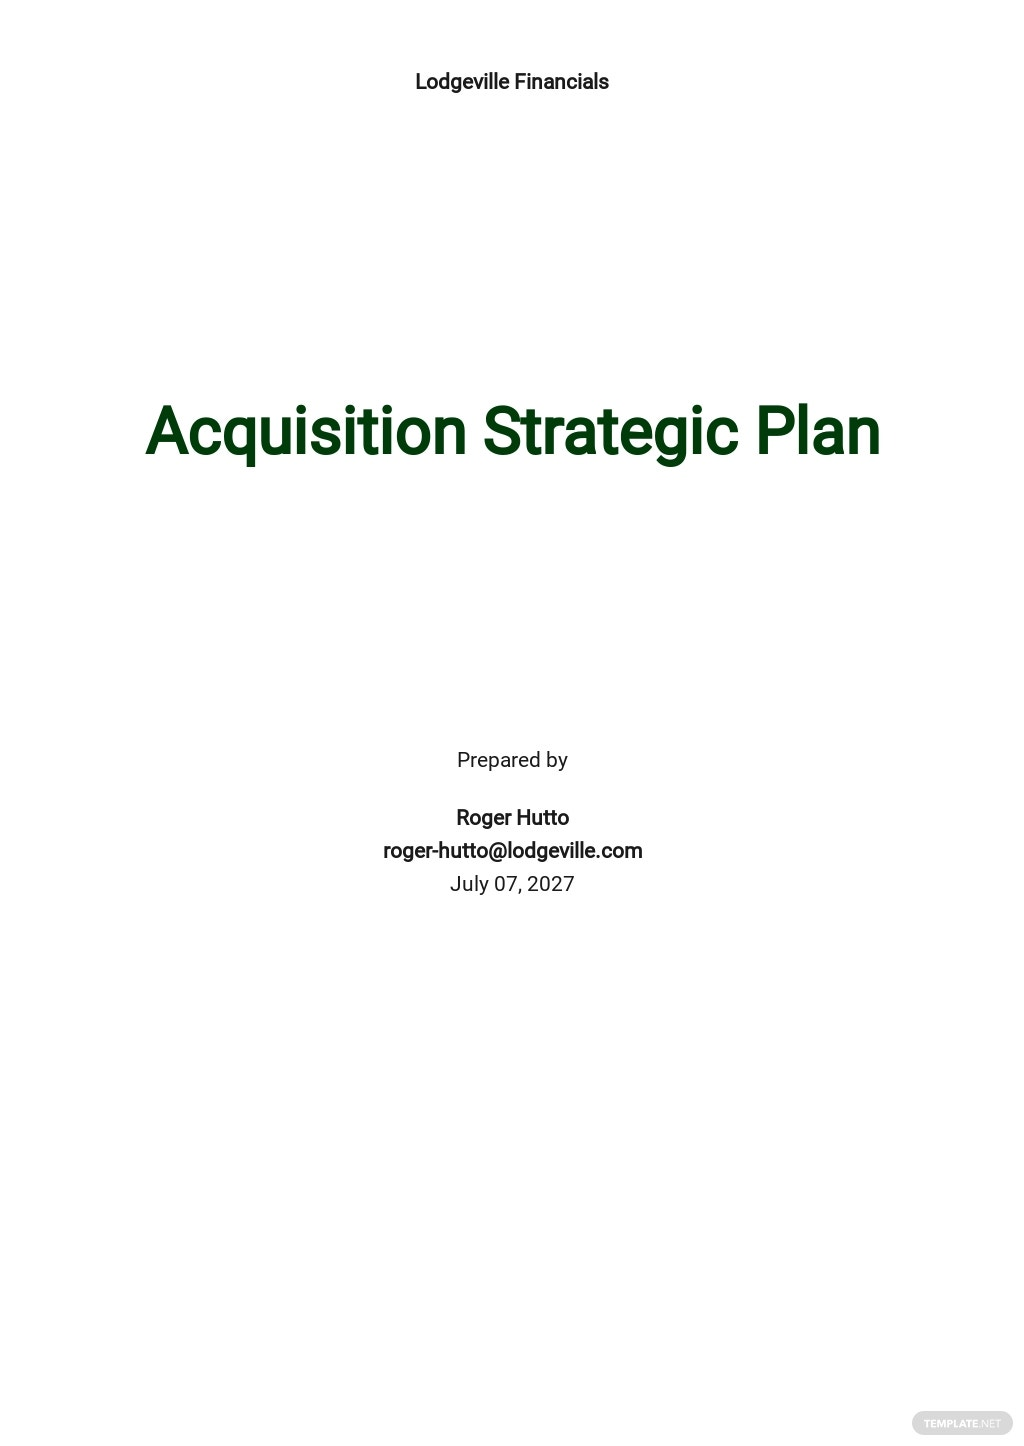 Acquisition Strategy Plan Template.jpe